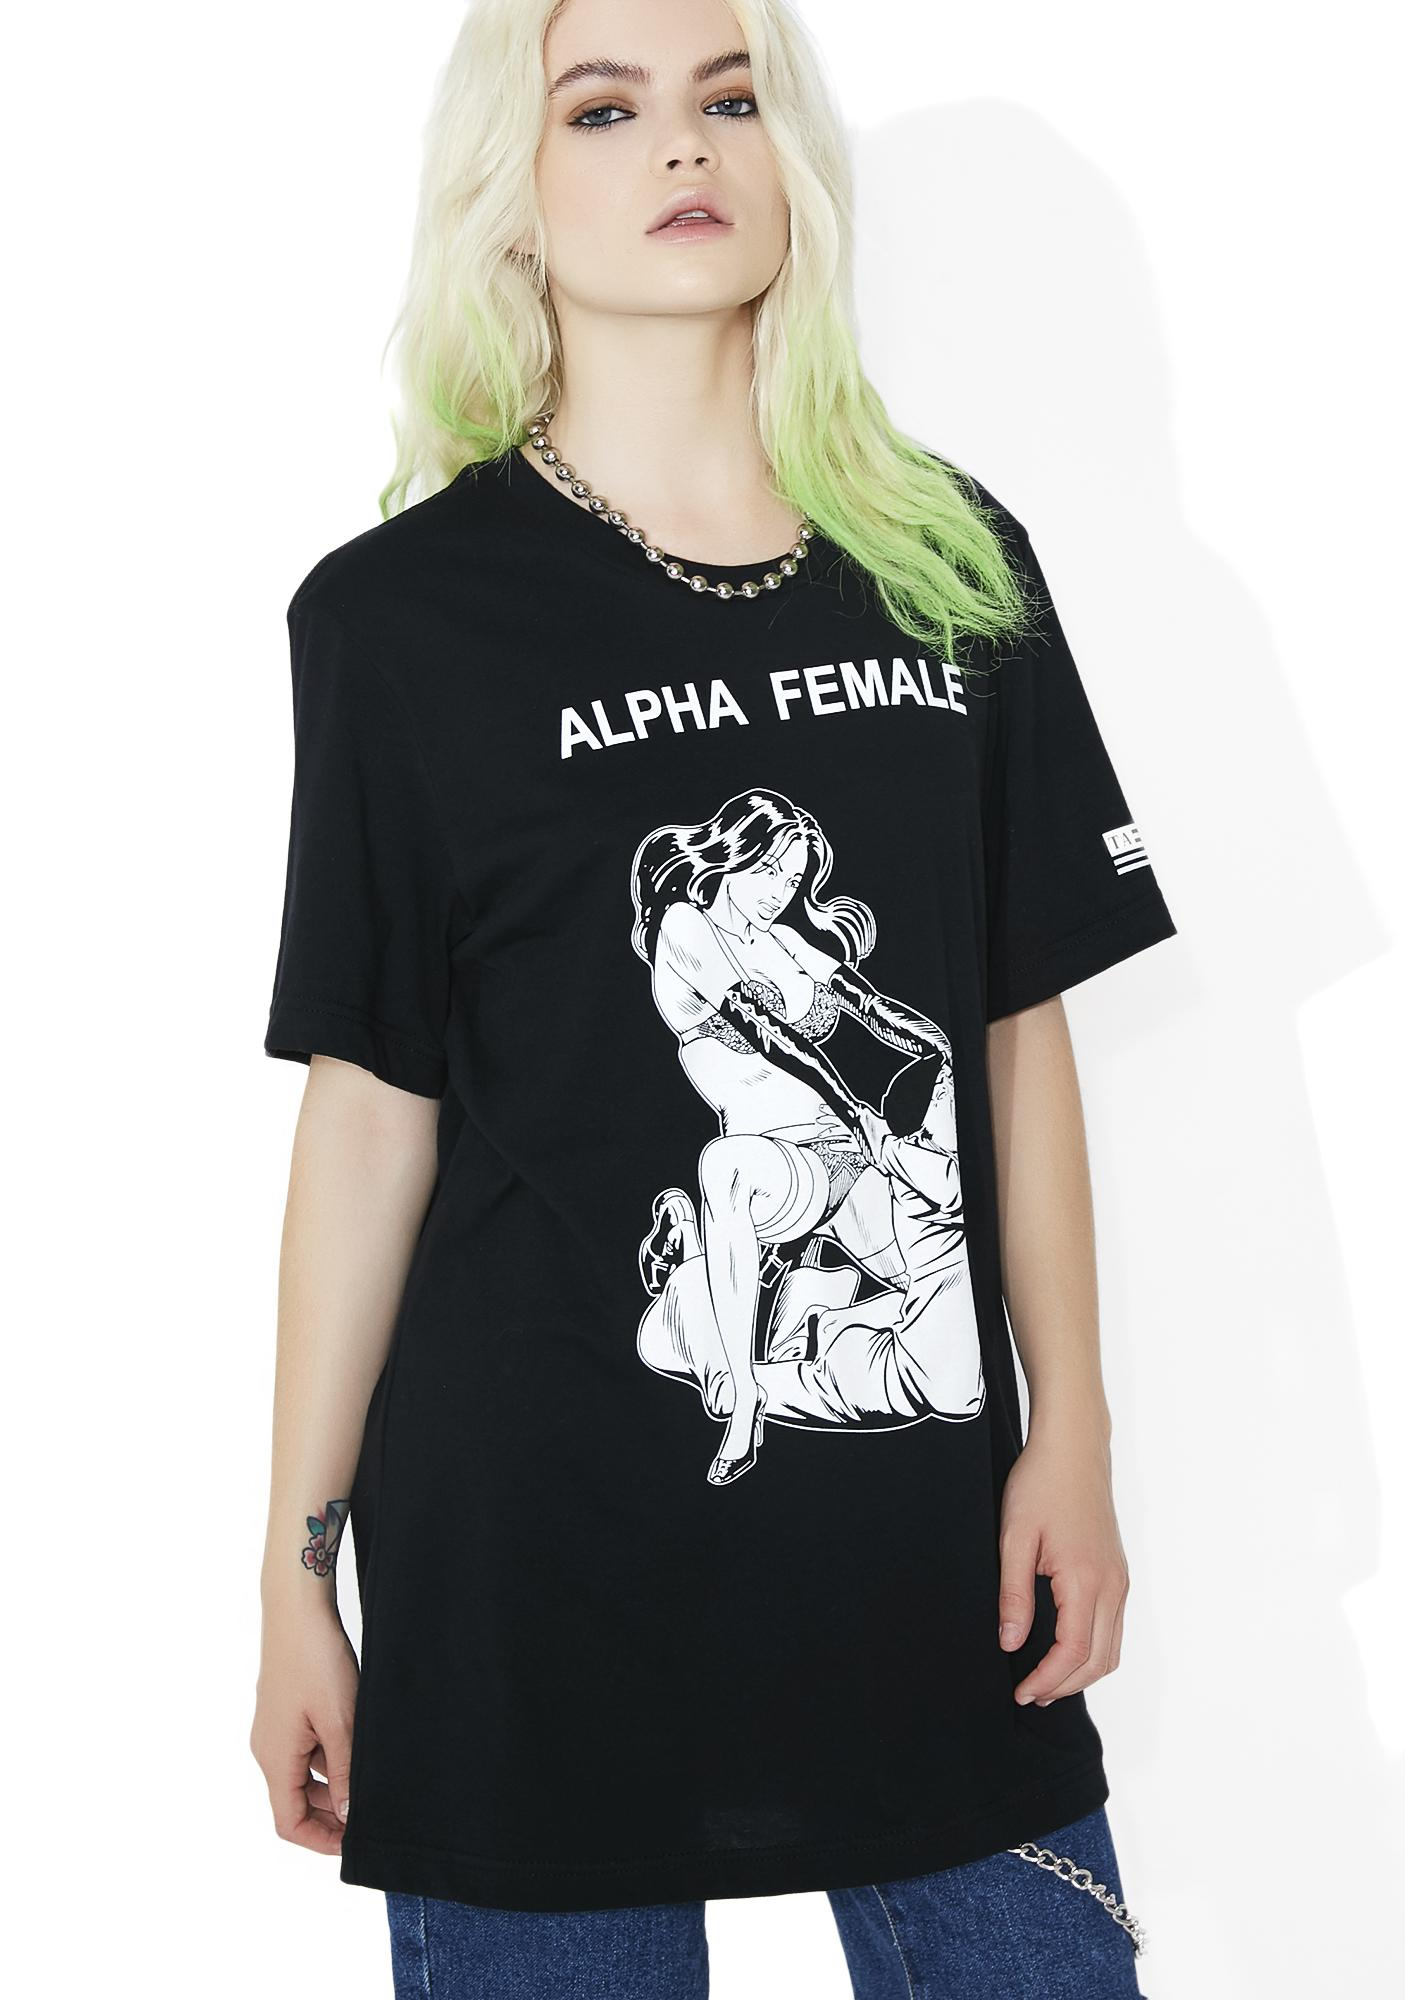 These Americans Alpha Female Tee